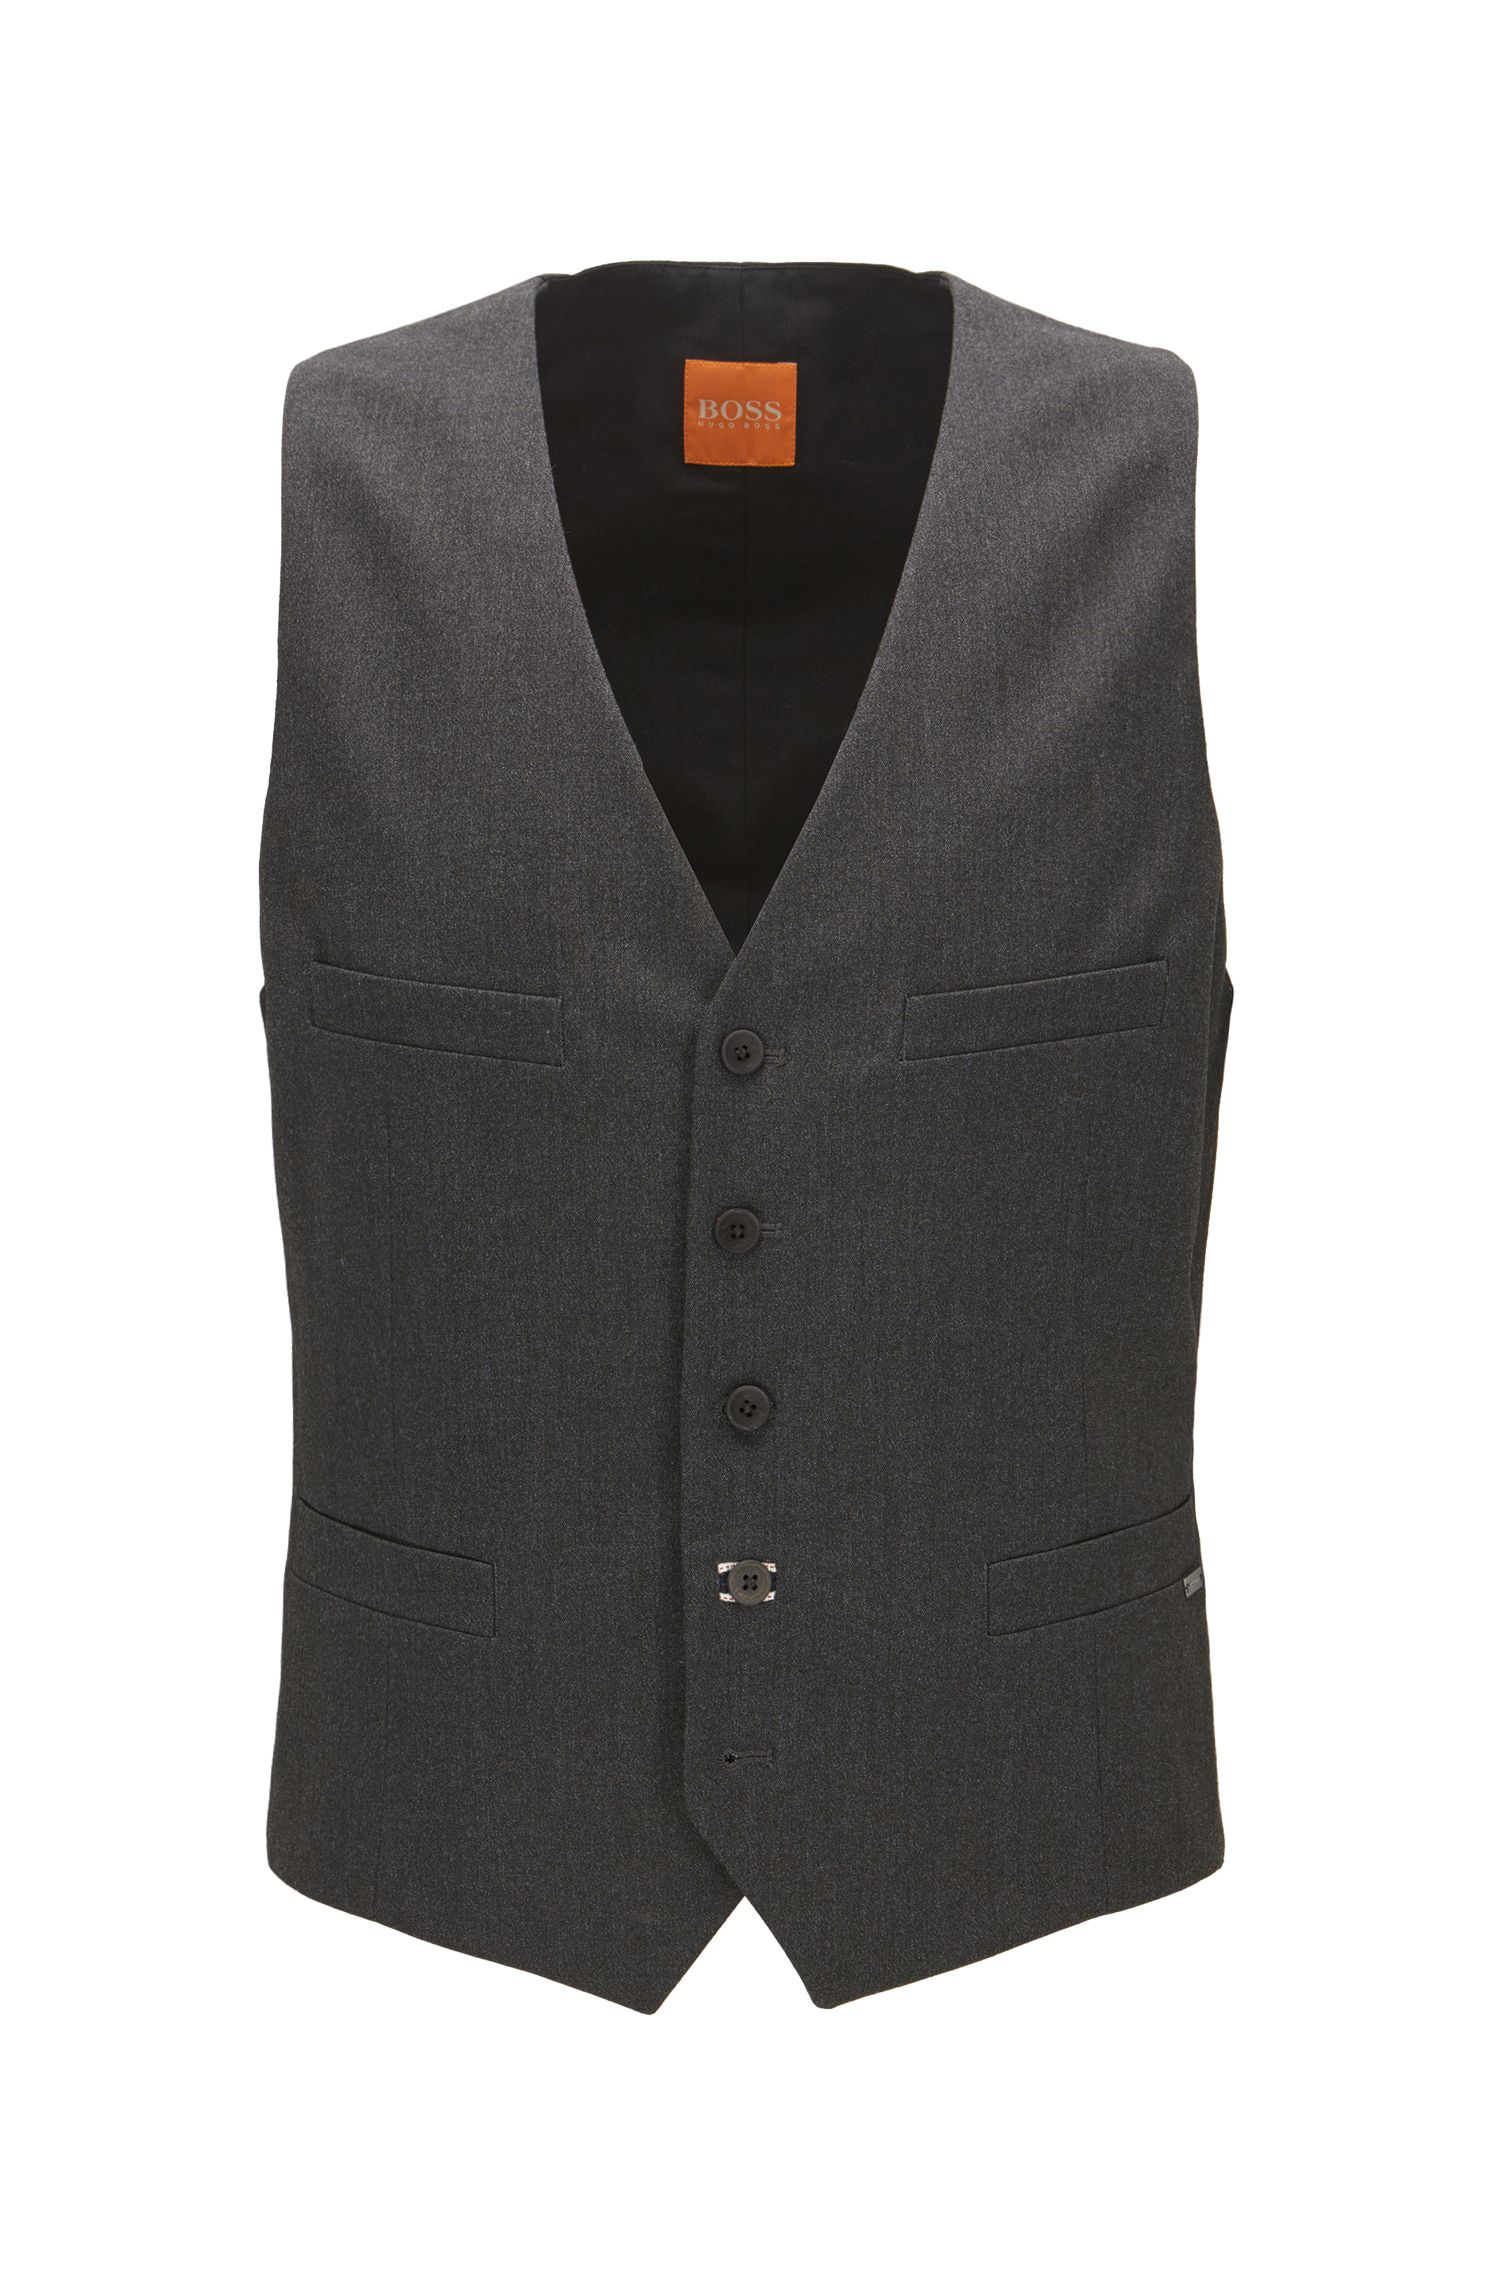 Slim-fit waistcoat in brushed mélange fabric